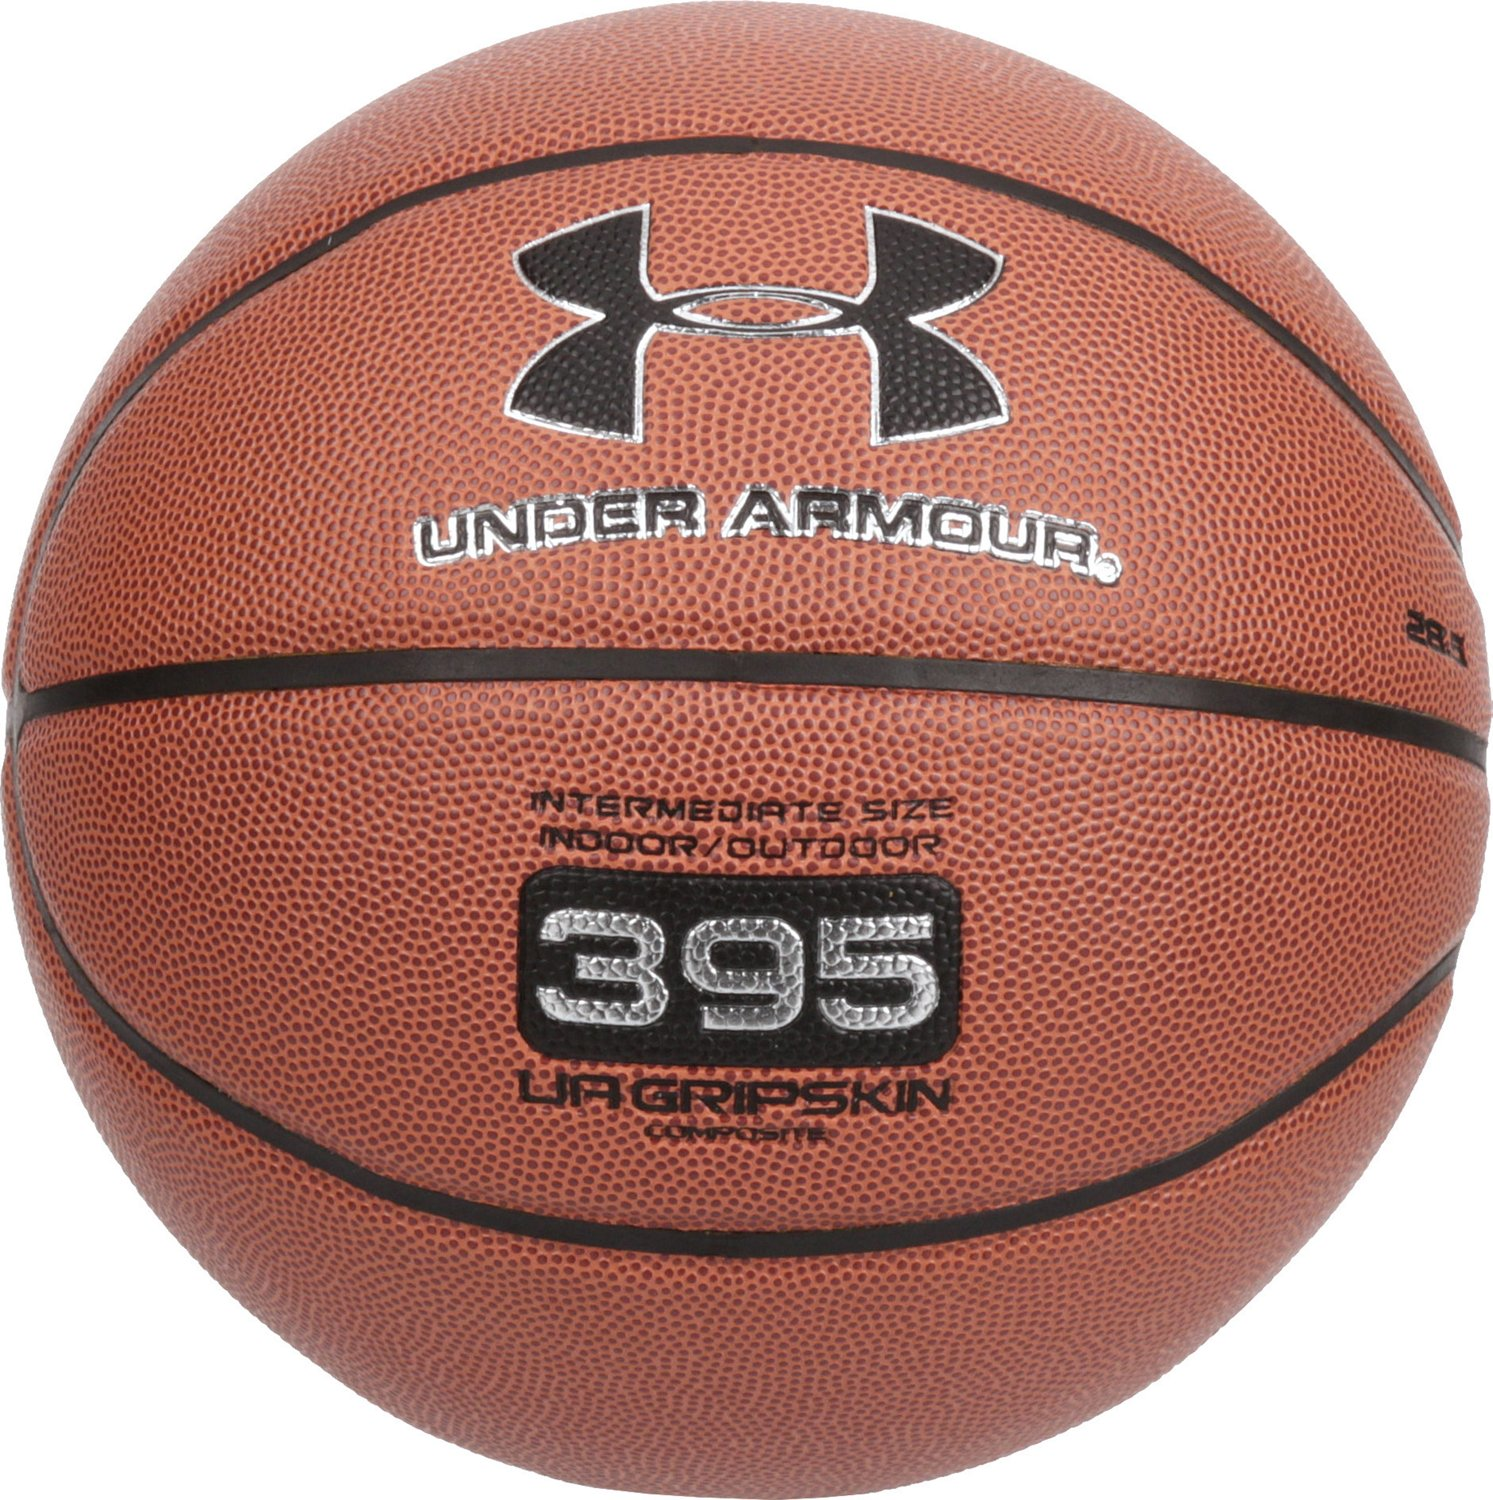 896fe01cb5c Display product reviews for Under Armour 395 Intermediate Size Indoor/Outdoor  Basketball